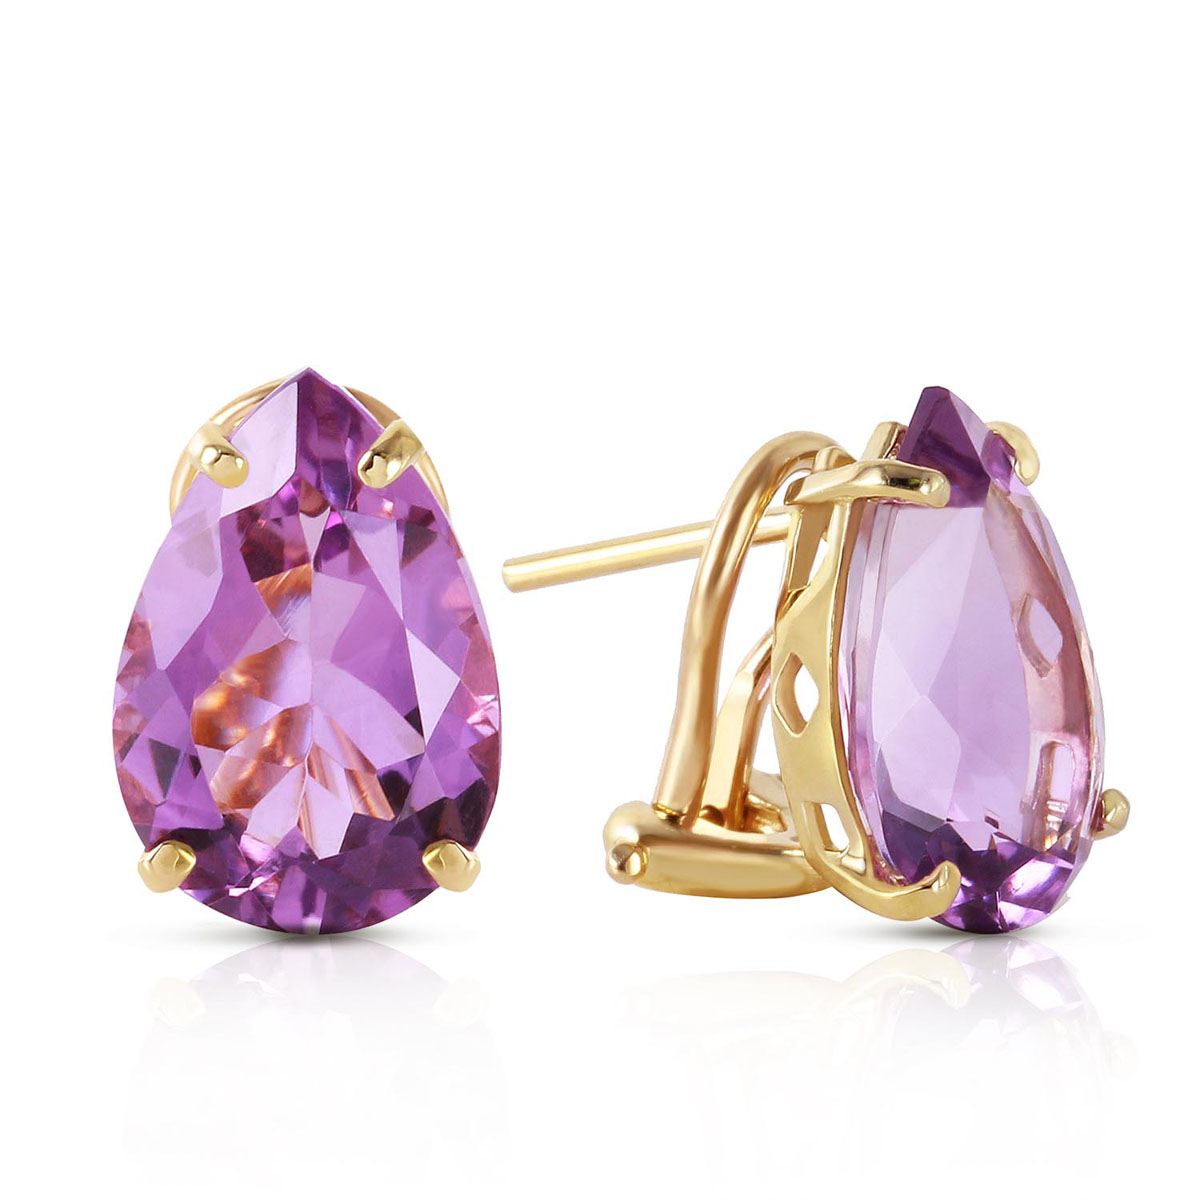 Amethyst Droplet Stud Earrings 10 ctw in 9ct Gold